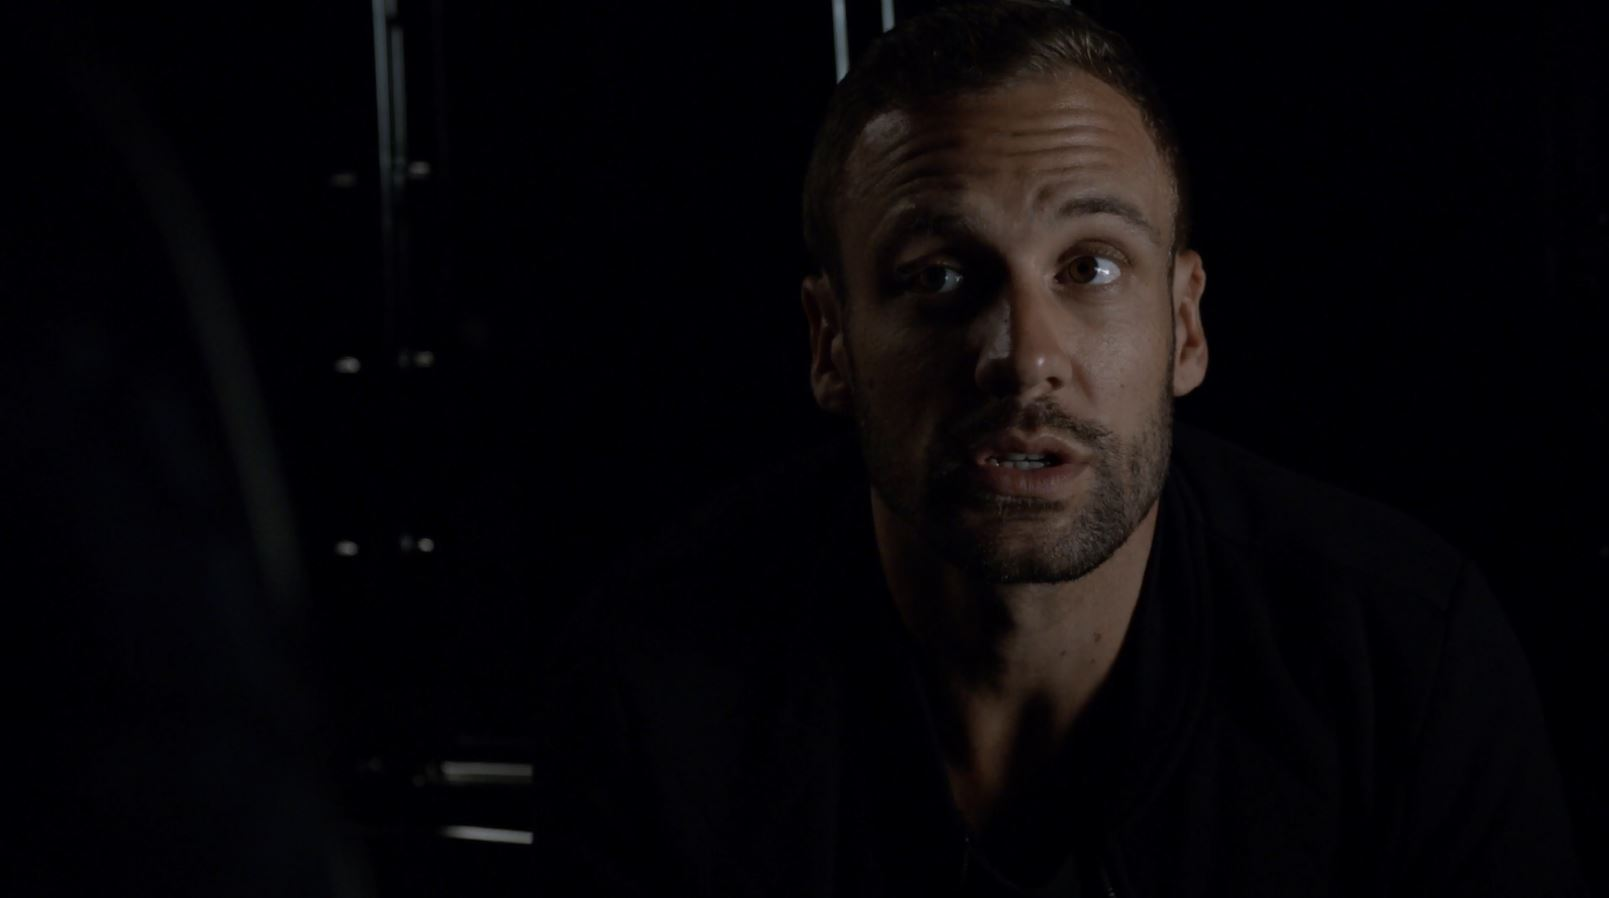 Hunter played by Nick Blood arguing with Mockingbird - Agents of SHIELD The Writing on the Wall Review